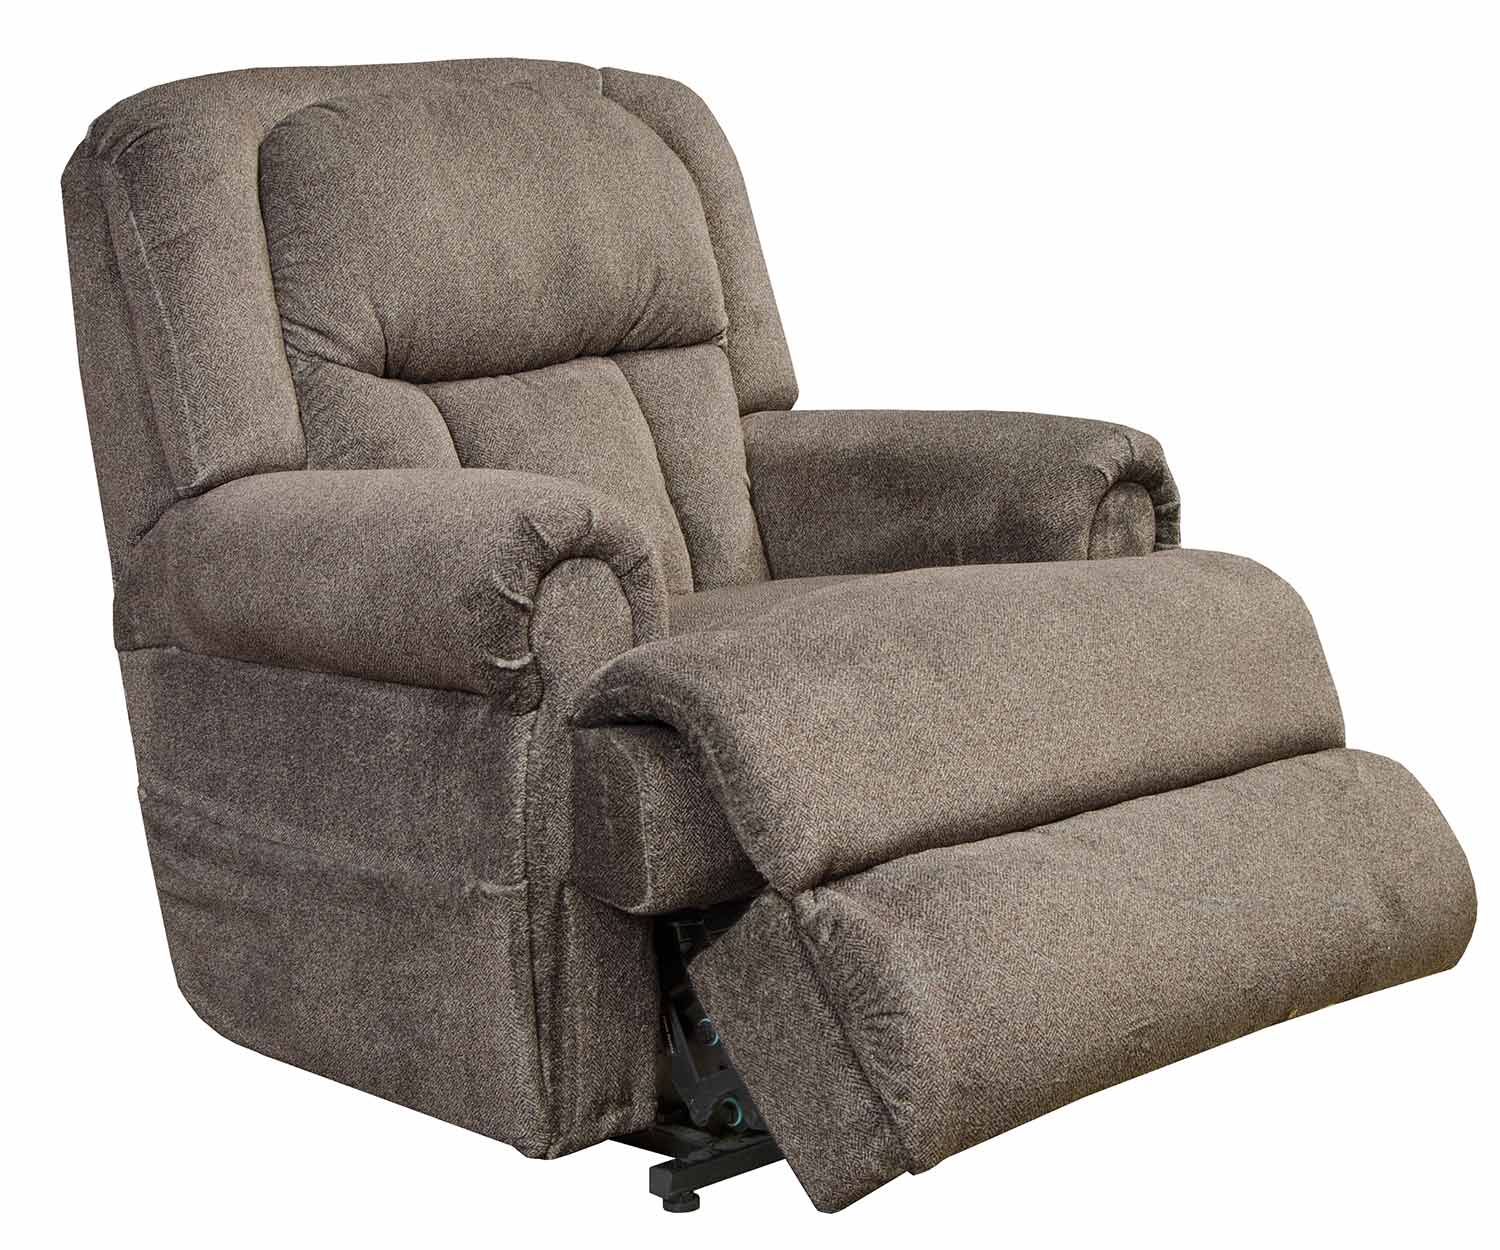 CatNapper Burns Power Lift Recliner Chair - Ash